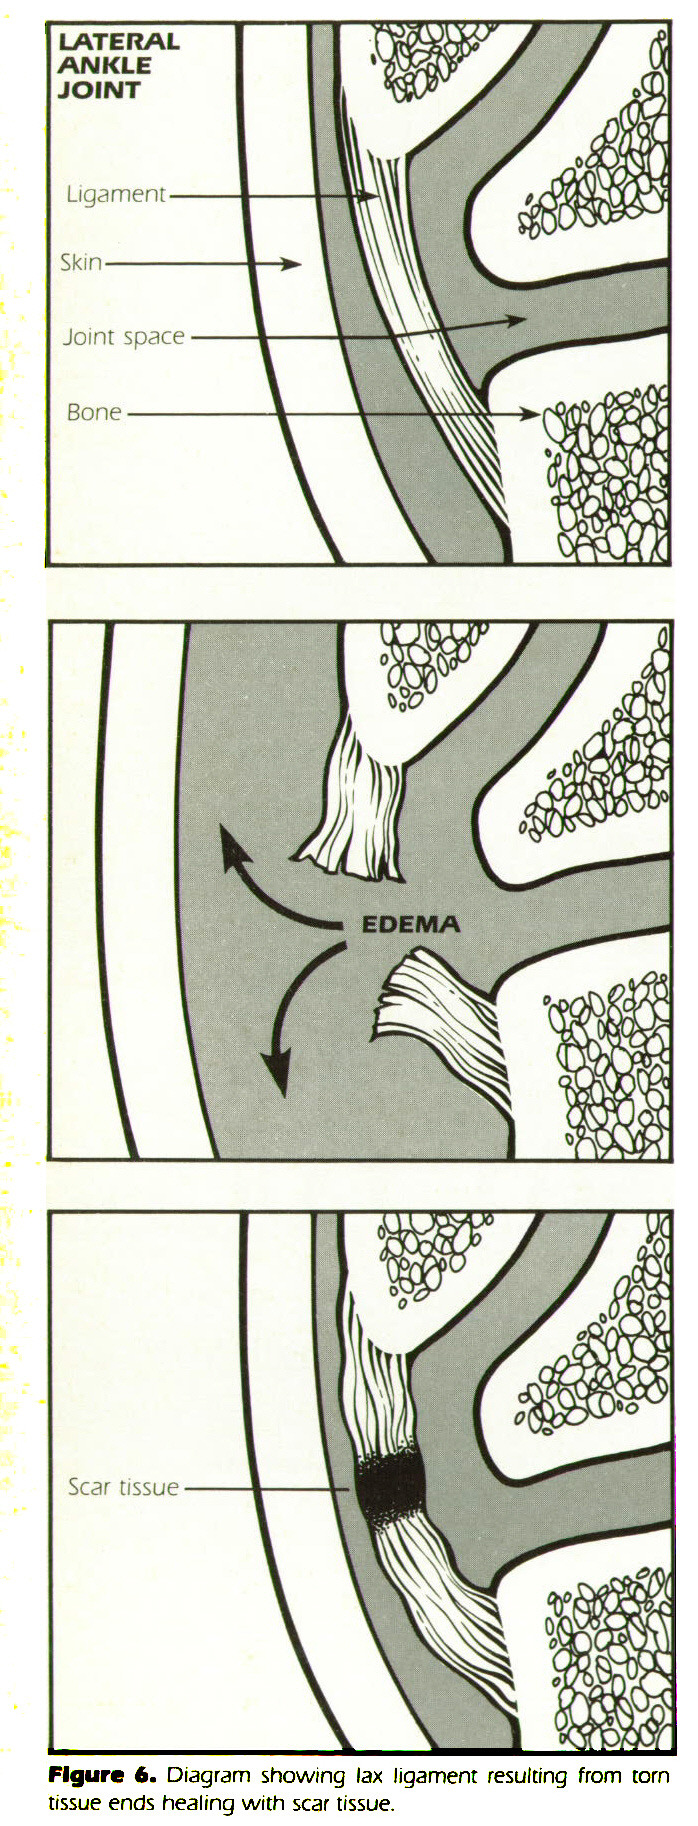 Figure 6. Diagram showing lax ligament resulting from torn tissue ends healing with scar tissue.